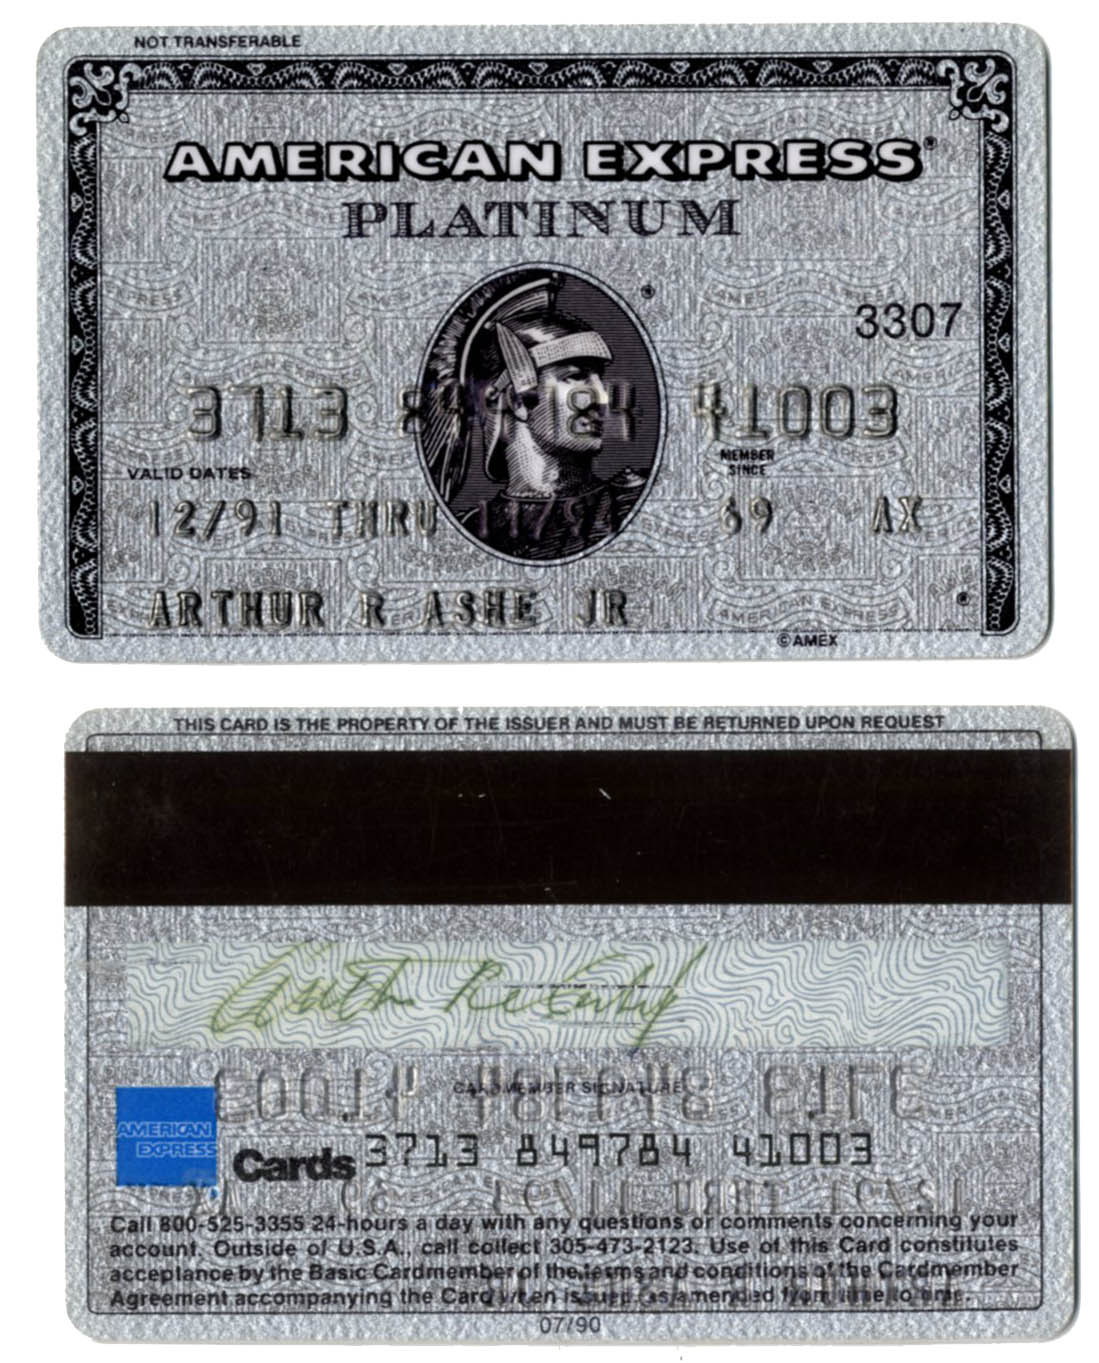 American Express Platinum Customer Service >> American Express Platinum Customer Service Number On Back Of Card